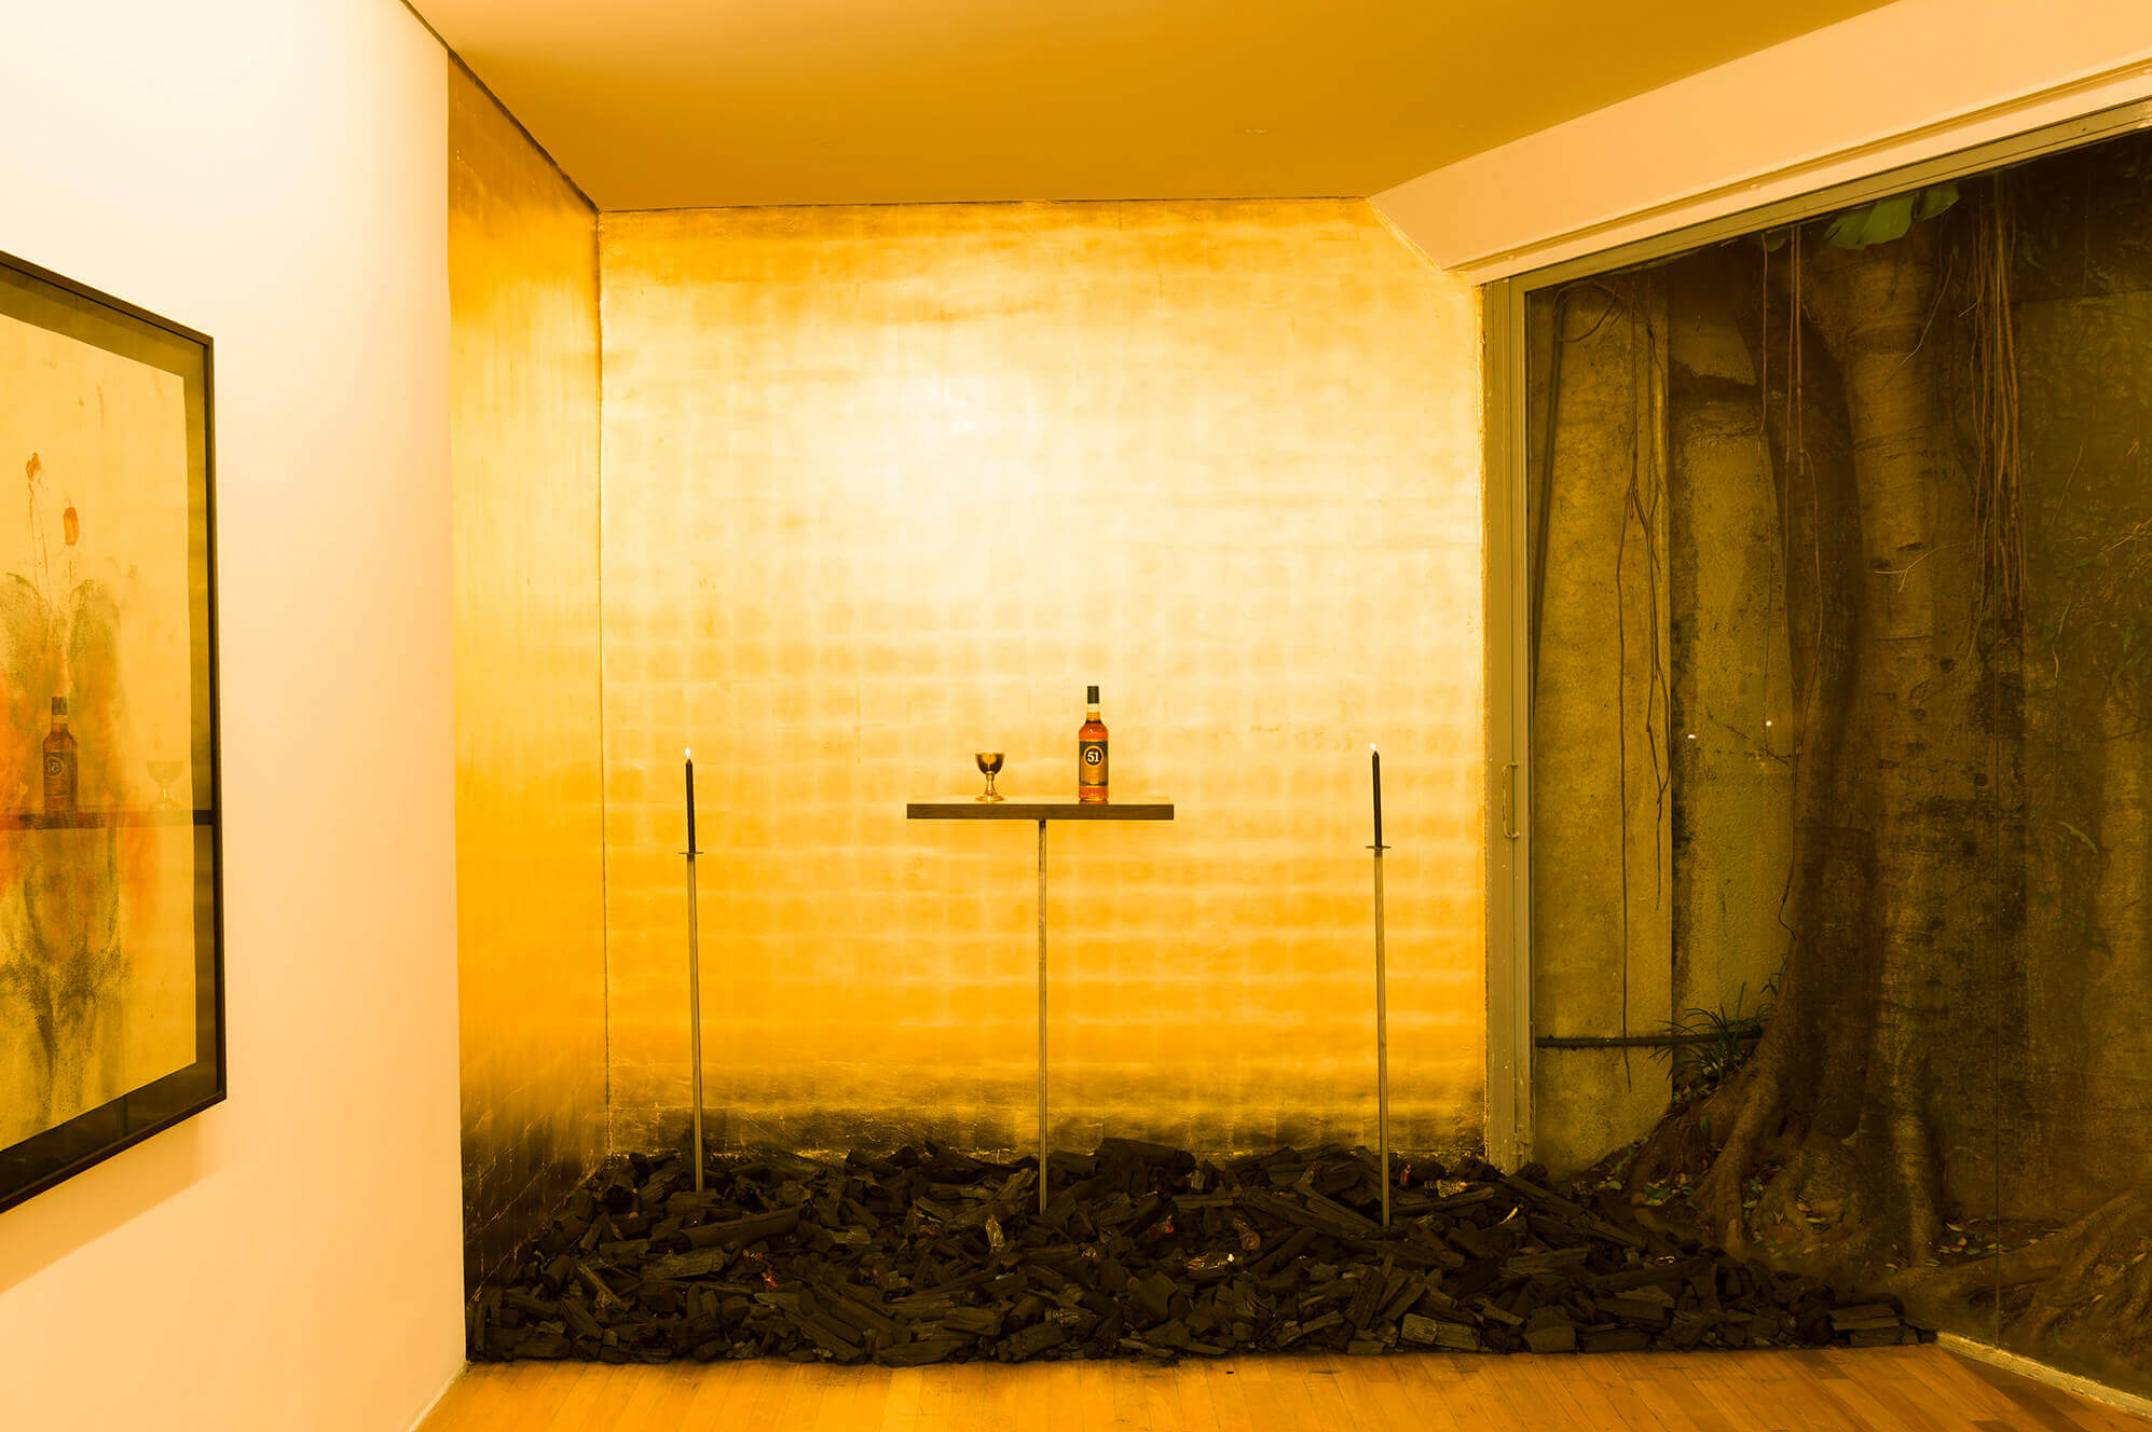 Antônio Obá, <em>Malungo - rito parauma missa preta</em>, 2016, charcoal, plaster sculpture, bottle of brazilian spirit, candles, chalice plated in gold and gold leaves, dimensions variable - Mendes Wood DM